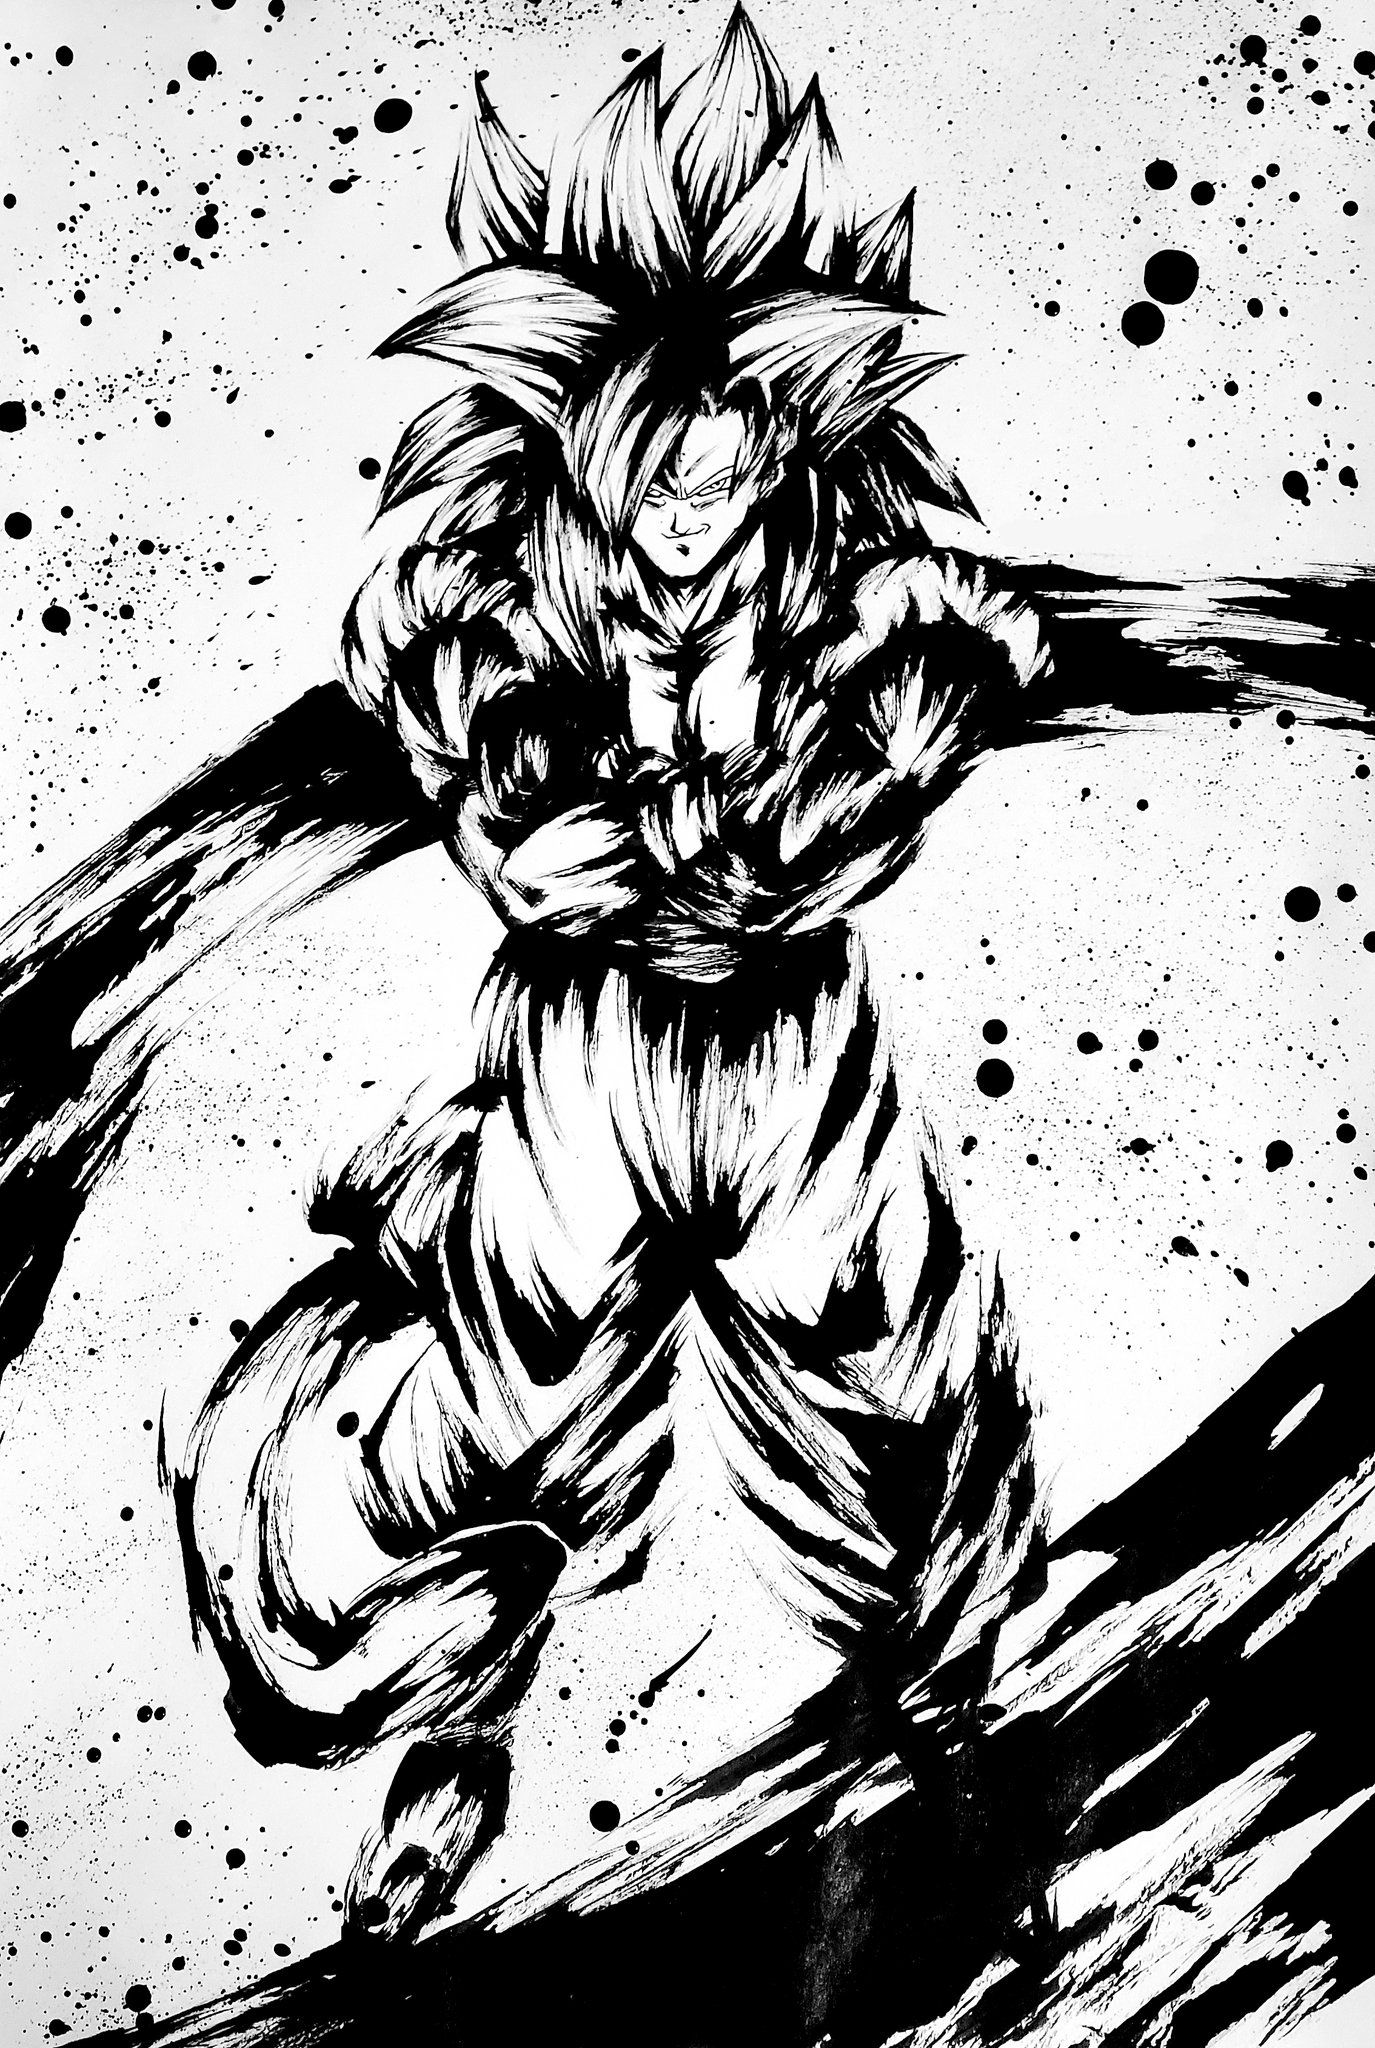 Pin by Son Goku サレ on Dragon Ball Ink Style Arts ️♠️ in